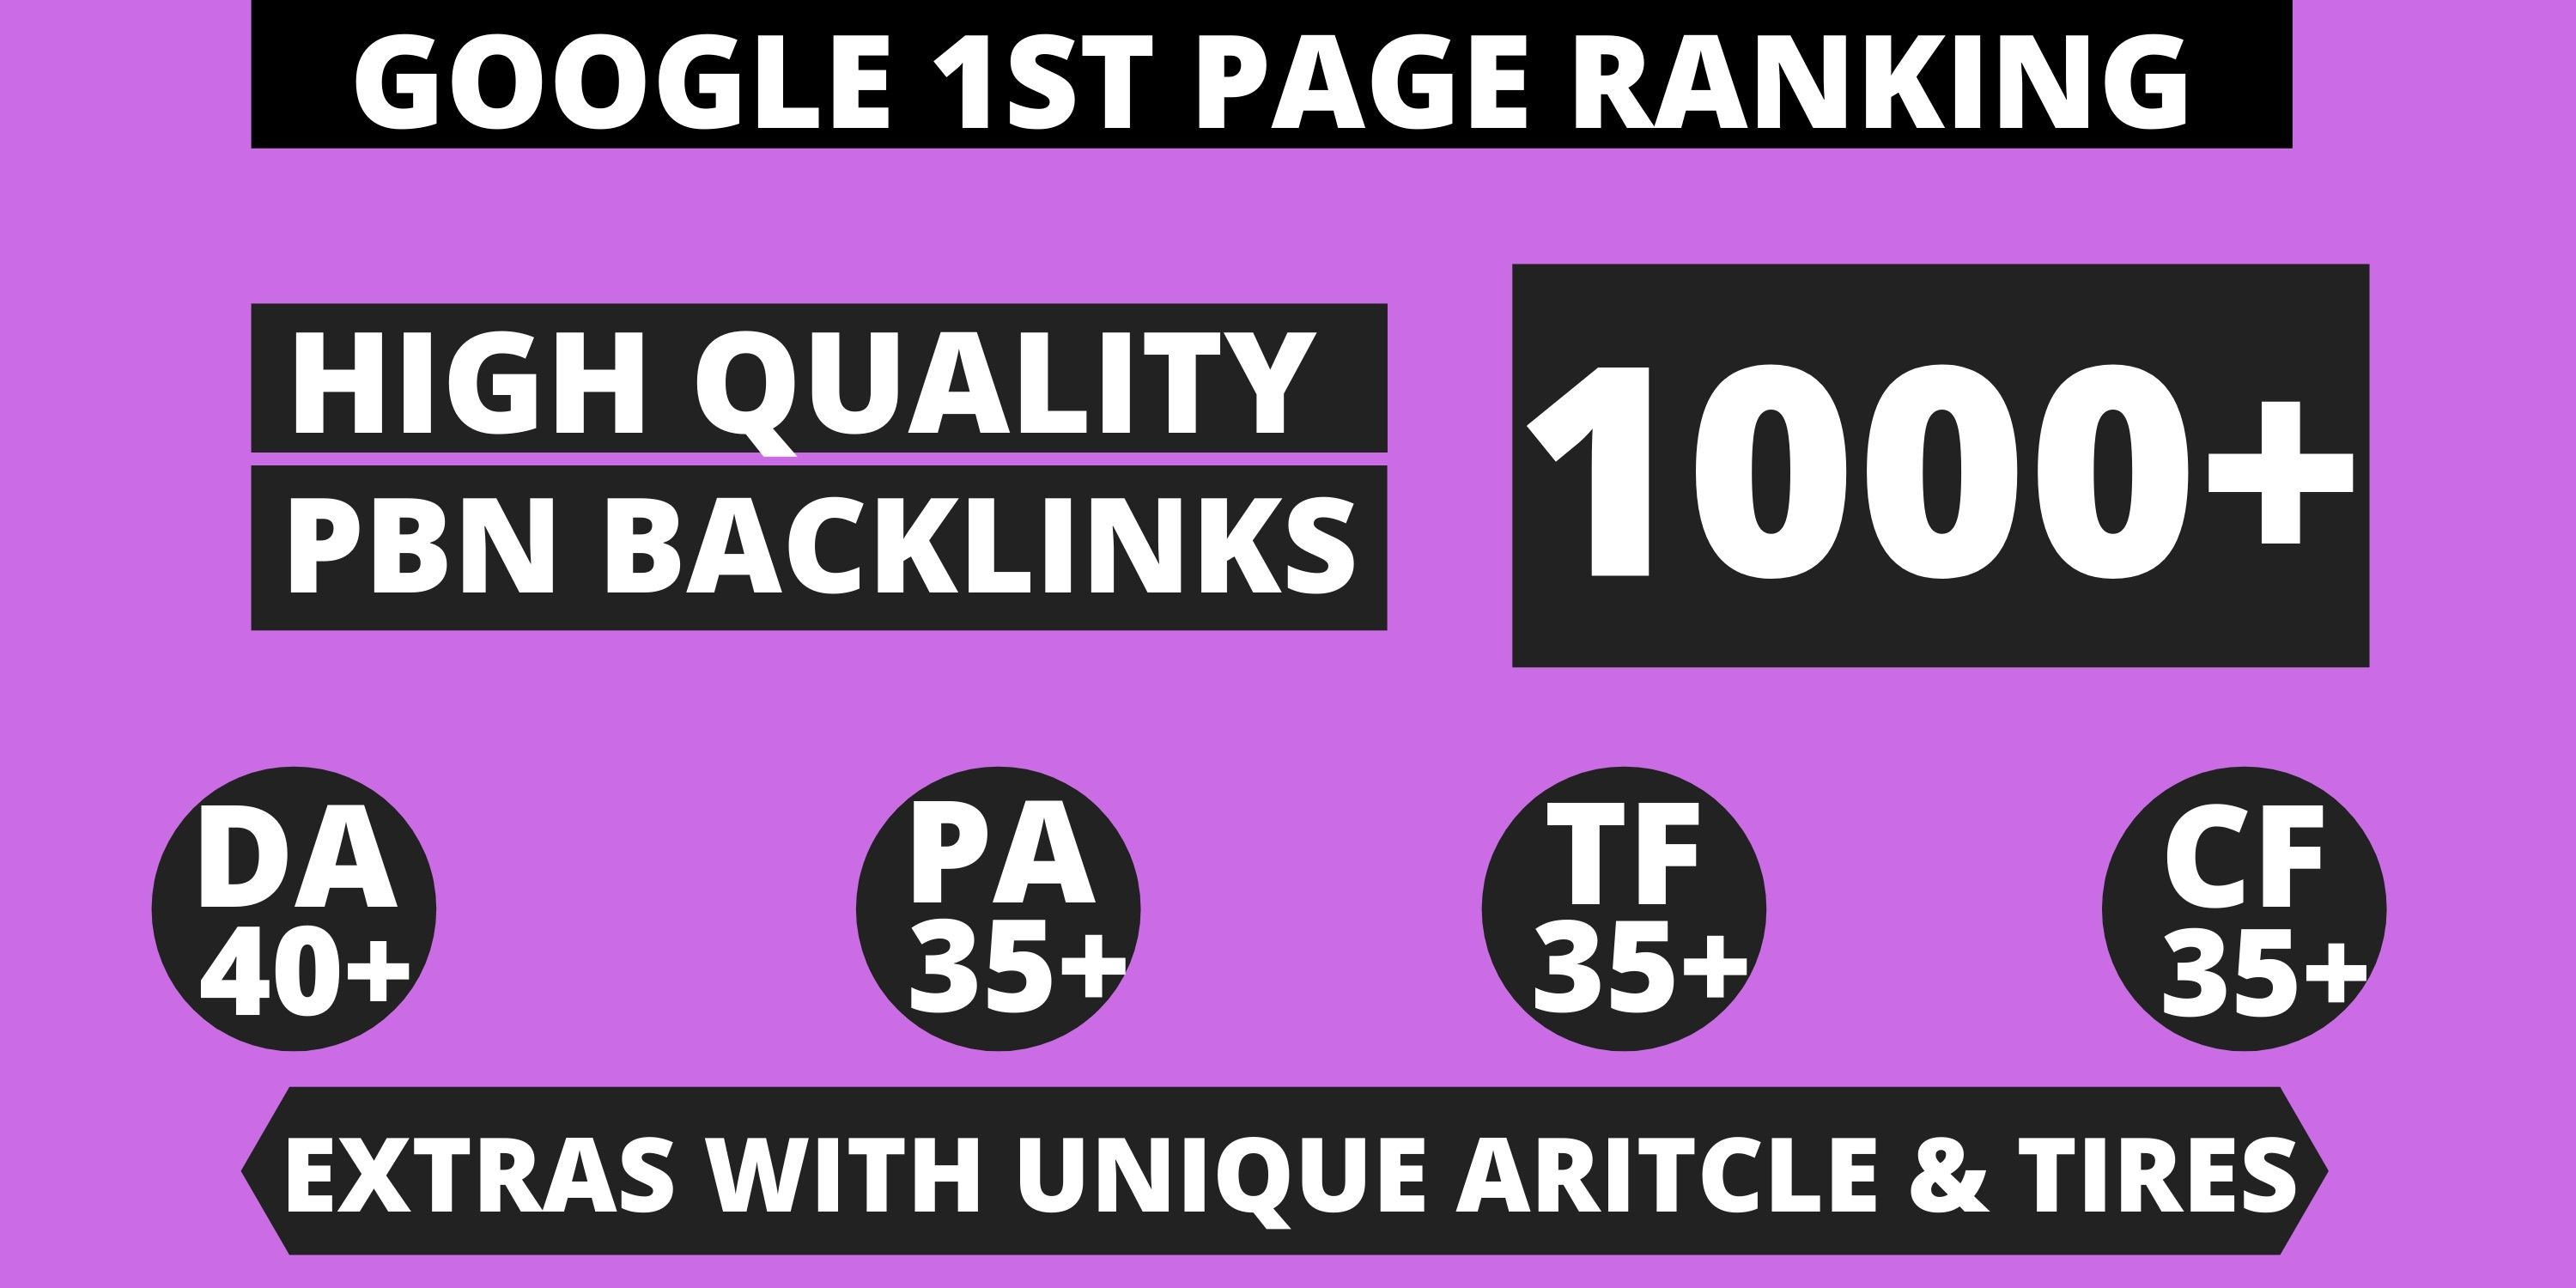 Get Extreme 1000+ PBN Backlink in your website homepage with HIGH DA/PA/TF/CF with unique website